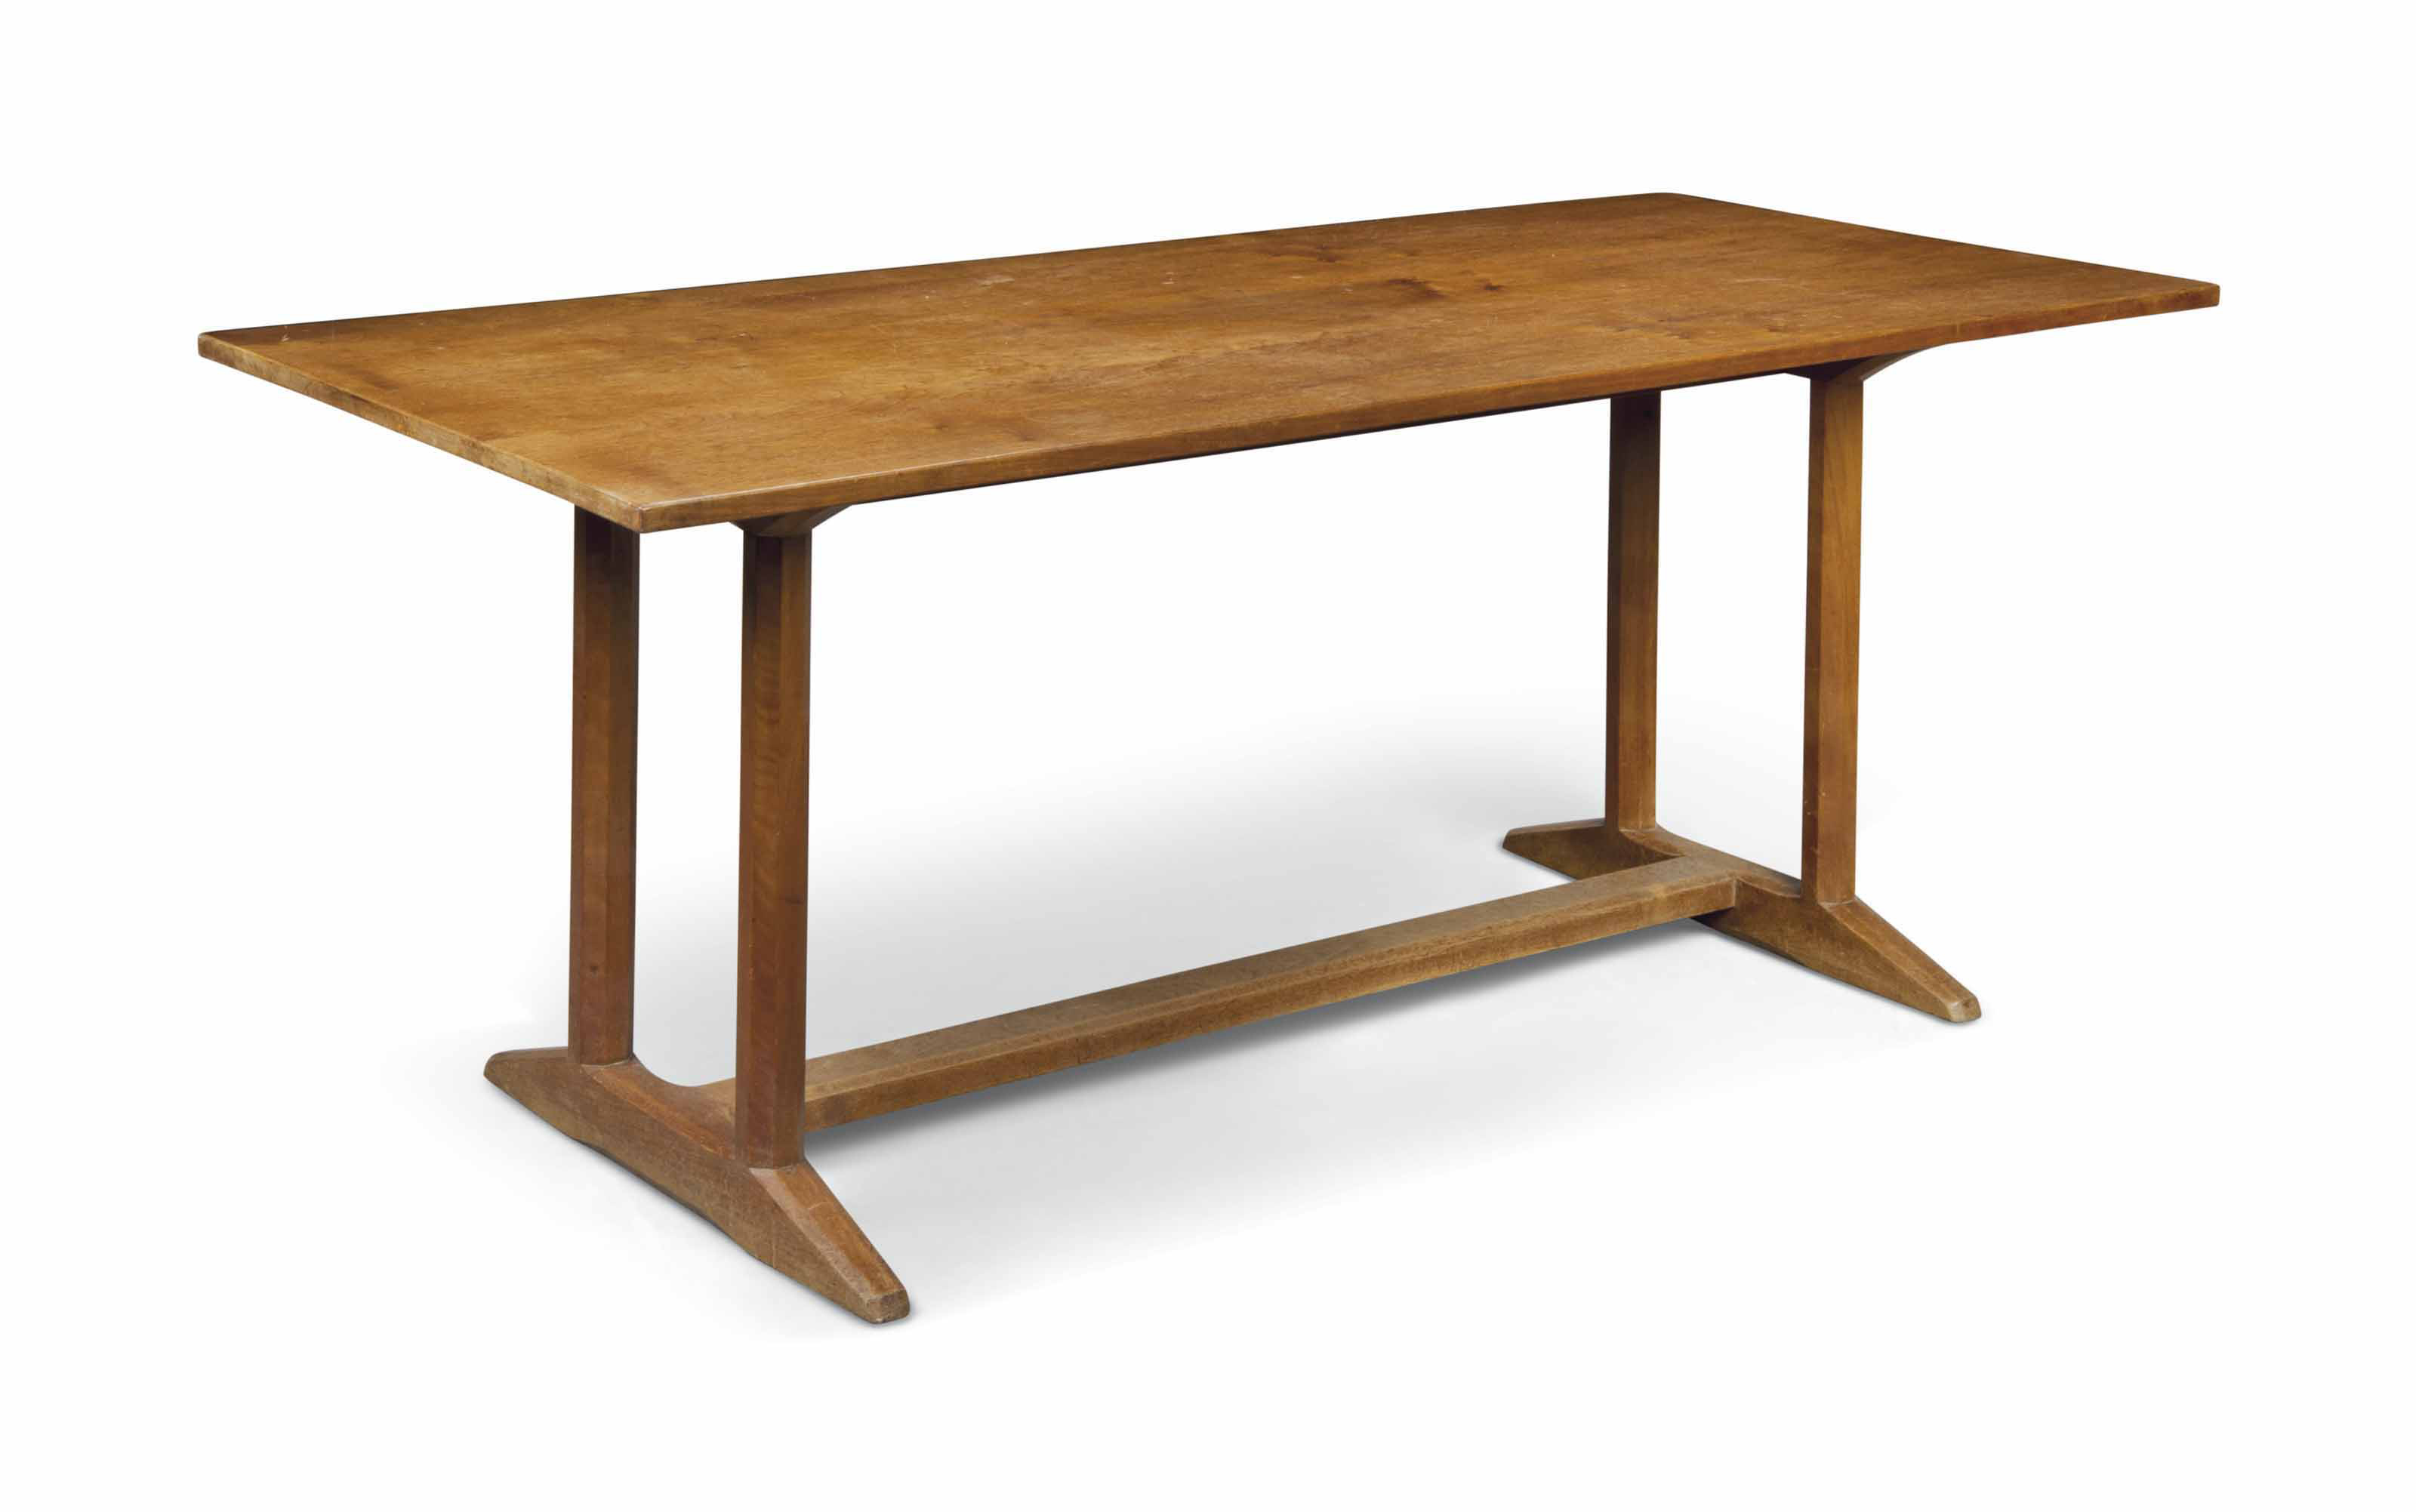 A GORDON RUSSELL WALNUT REFECTORY TABLE ON OCTAGONAL SUPPORTS UNITED BY CHAMFERED FEET AND STRETCHER